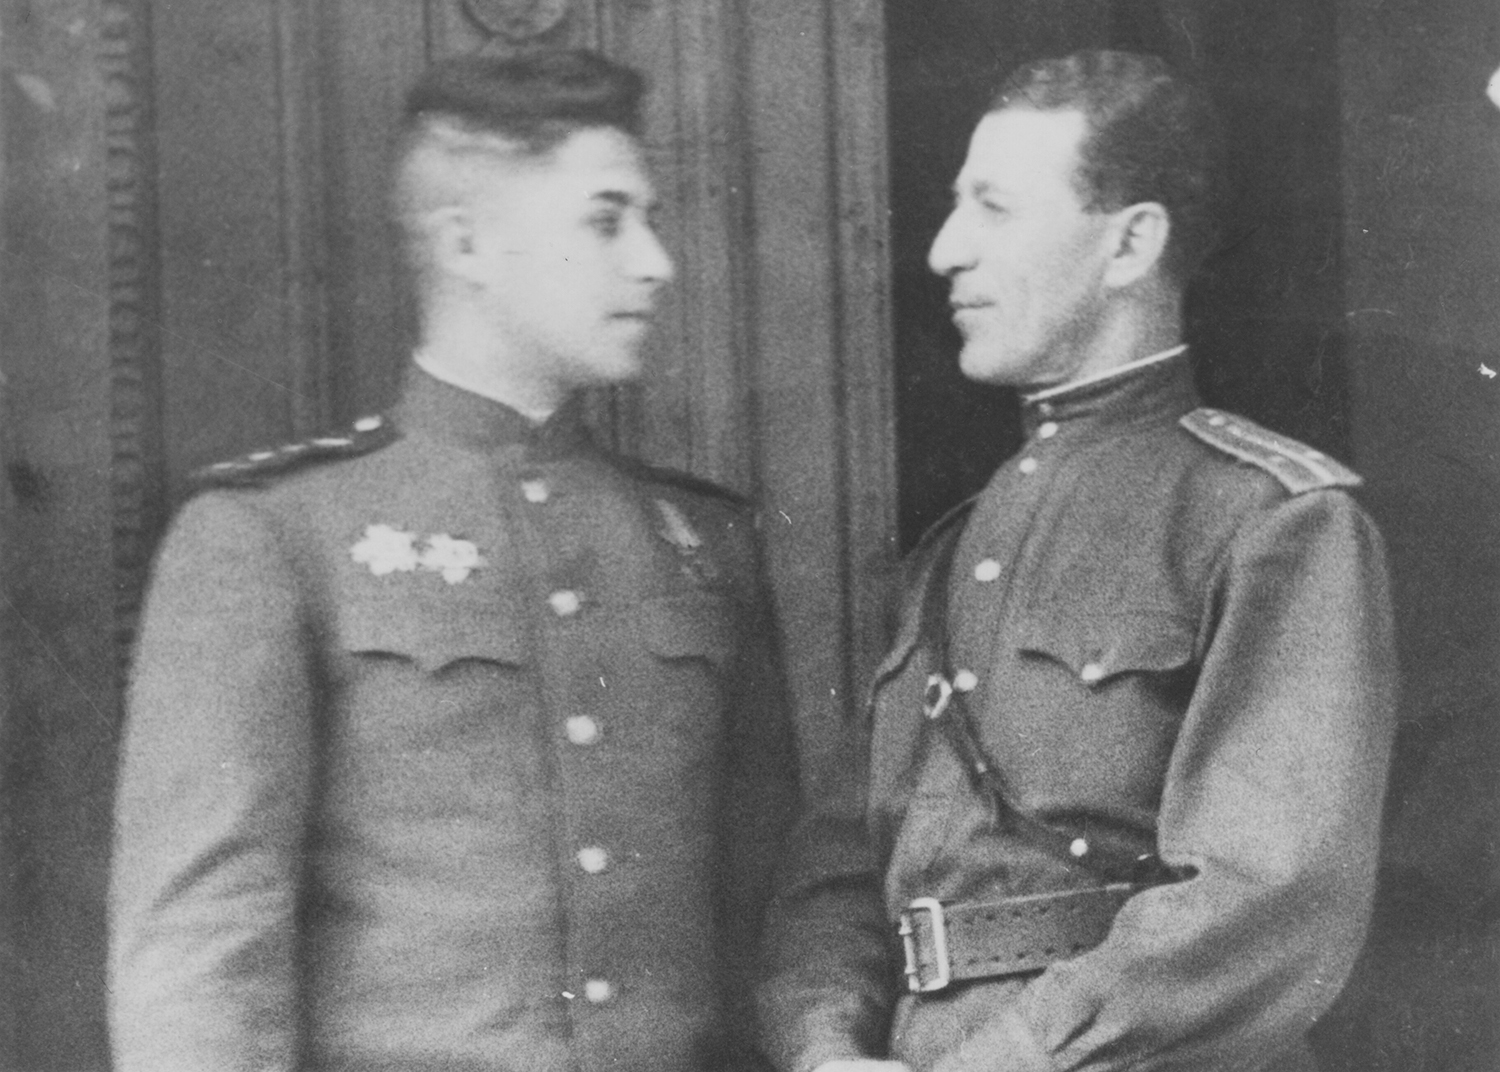 Two captains: Leonid Rozenberg (on left) and his father Boris Rozenberg on right. Byalostok ,  Ukraine . 1944